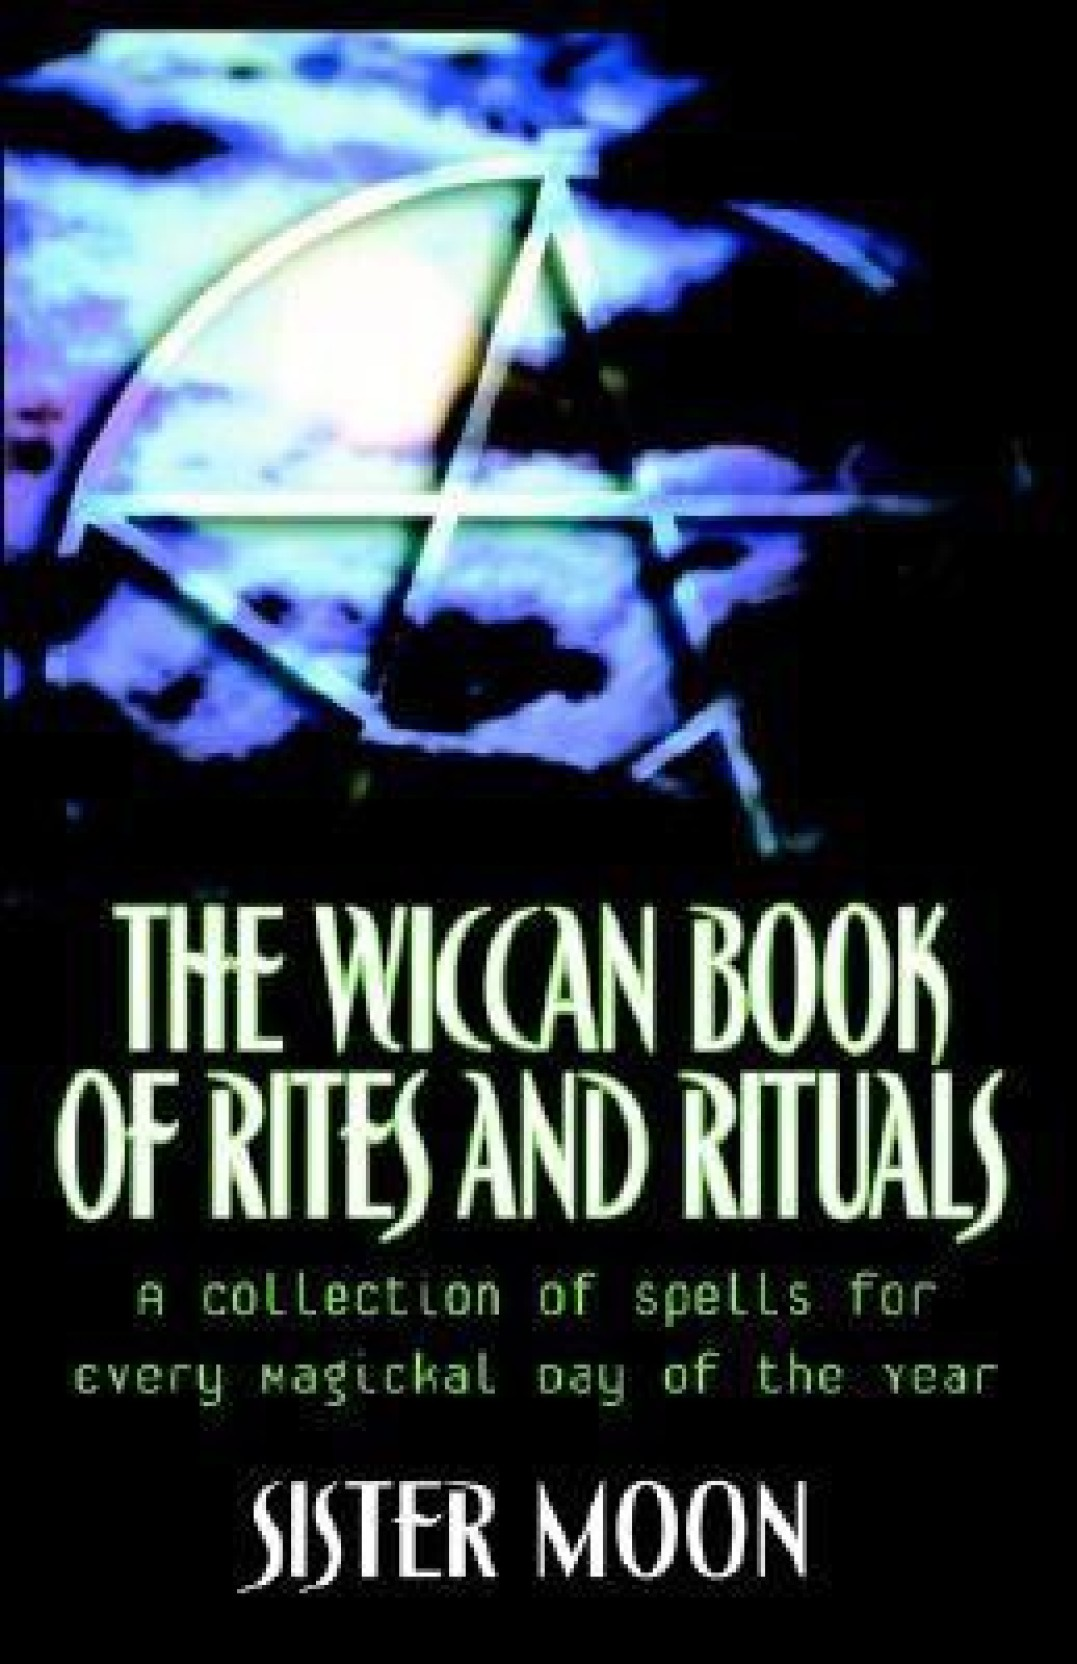 The Wiccan Book of Rites and Rituals: A Collection of Spells